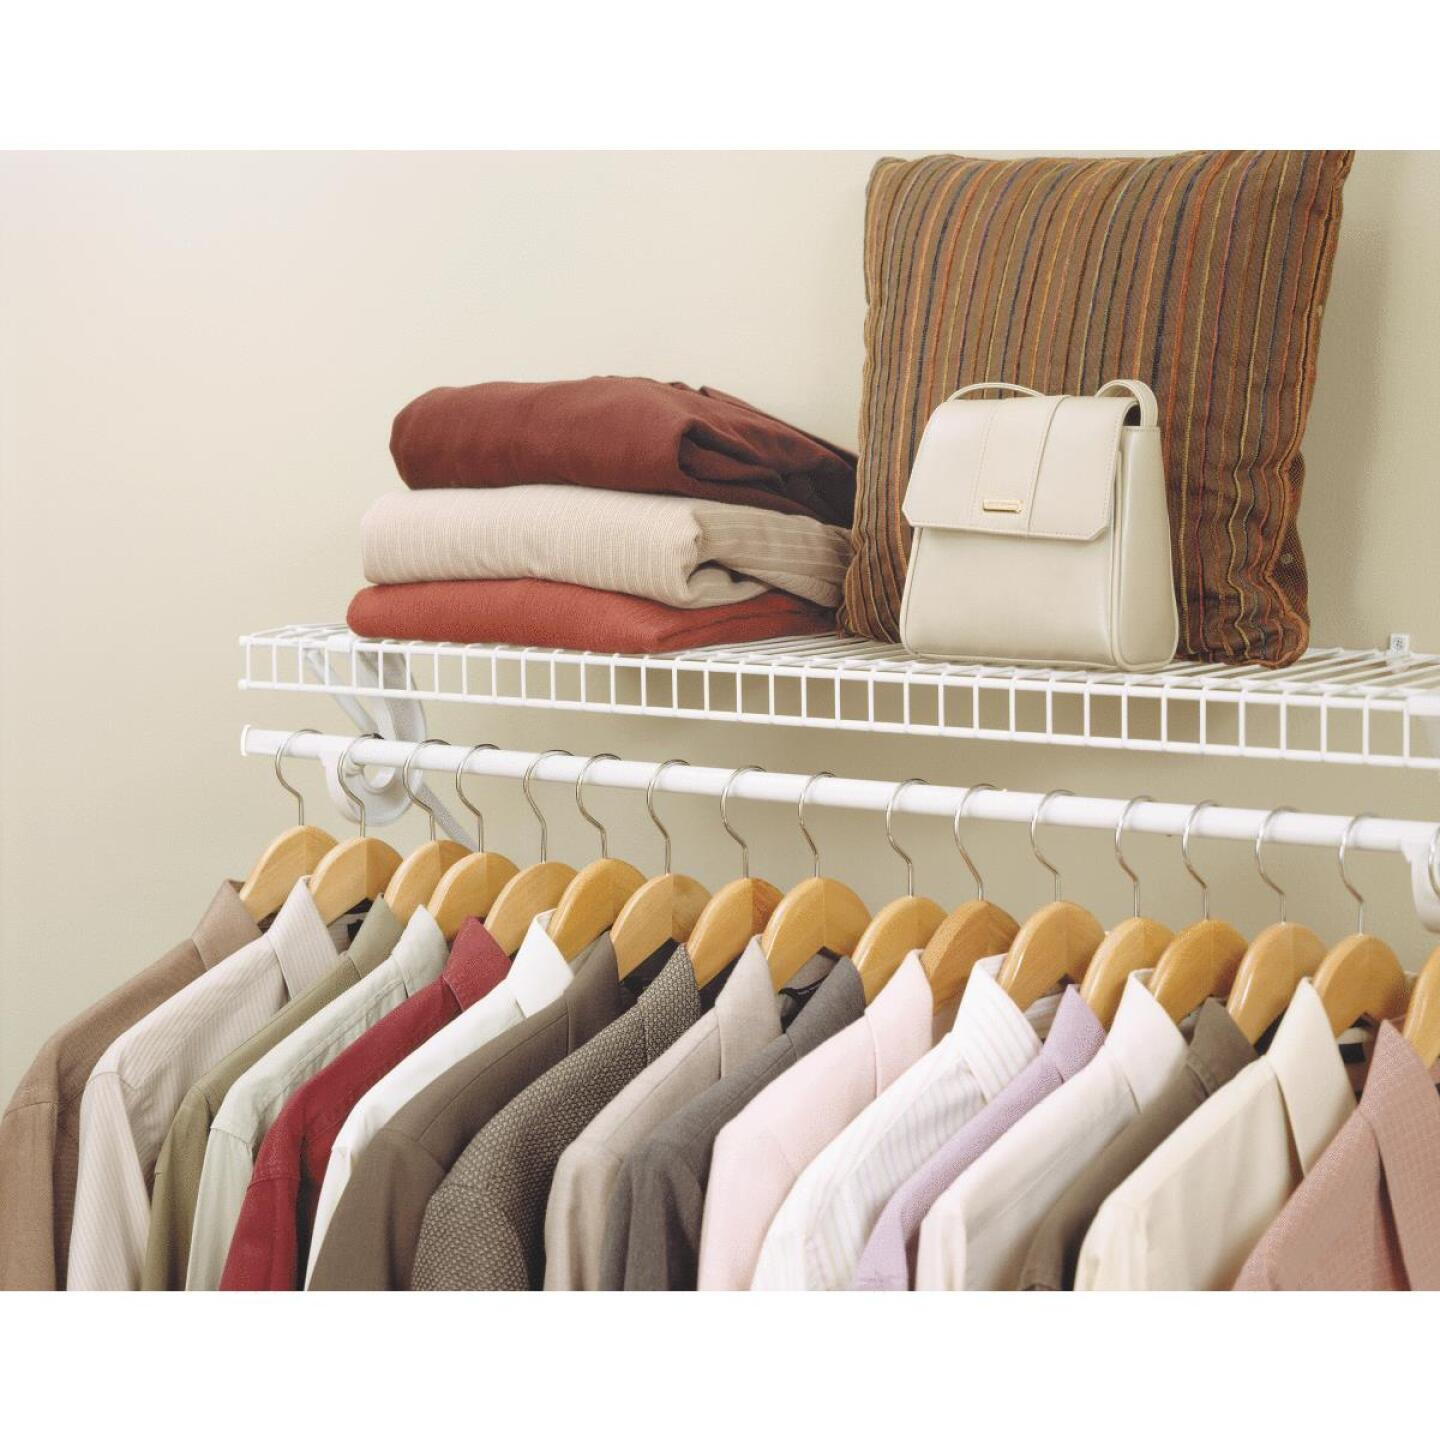 ClosetMaid SuperSlide 4 Ft. W. x 12 In. D. Ventilated Shelf Kit with Bar Image 2